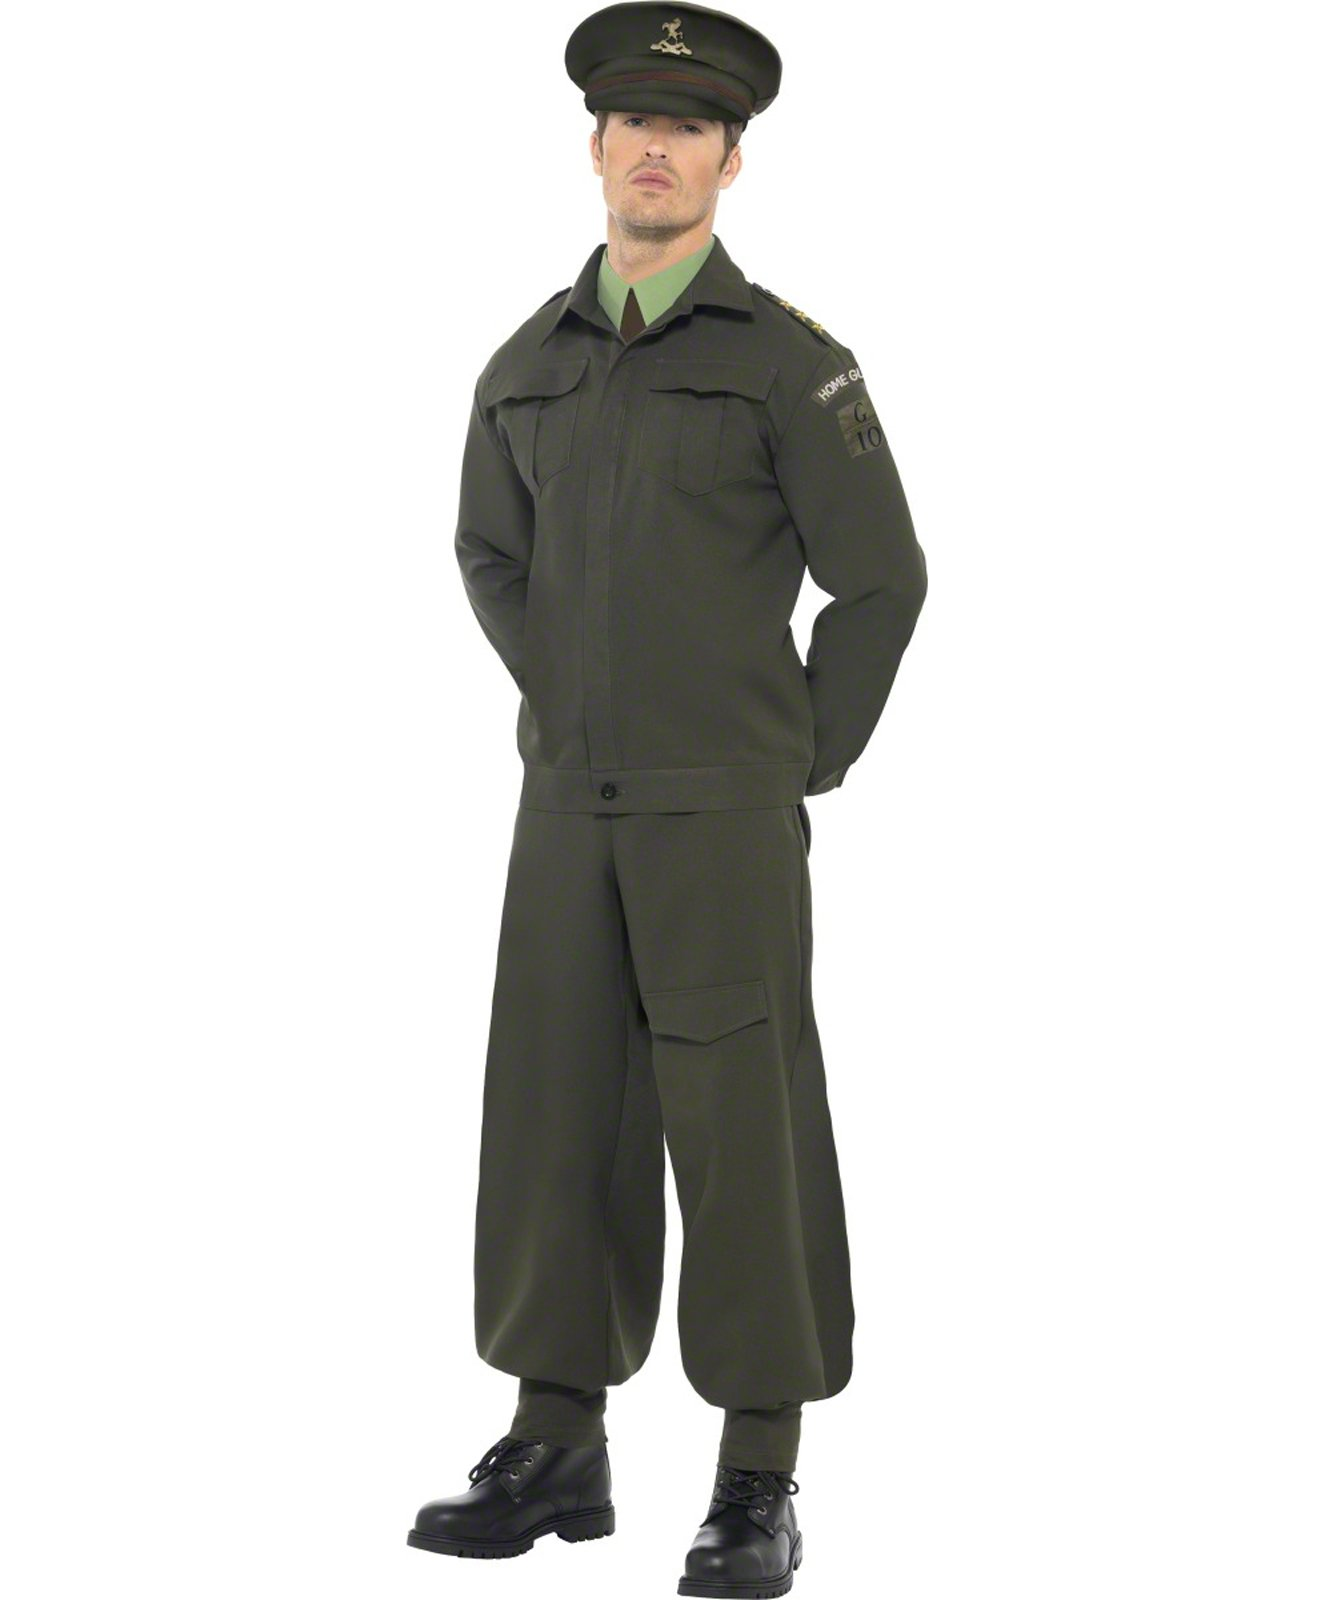 WW2 Home Guard Adult Costume